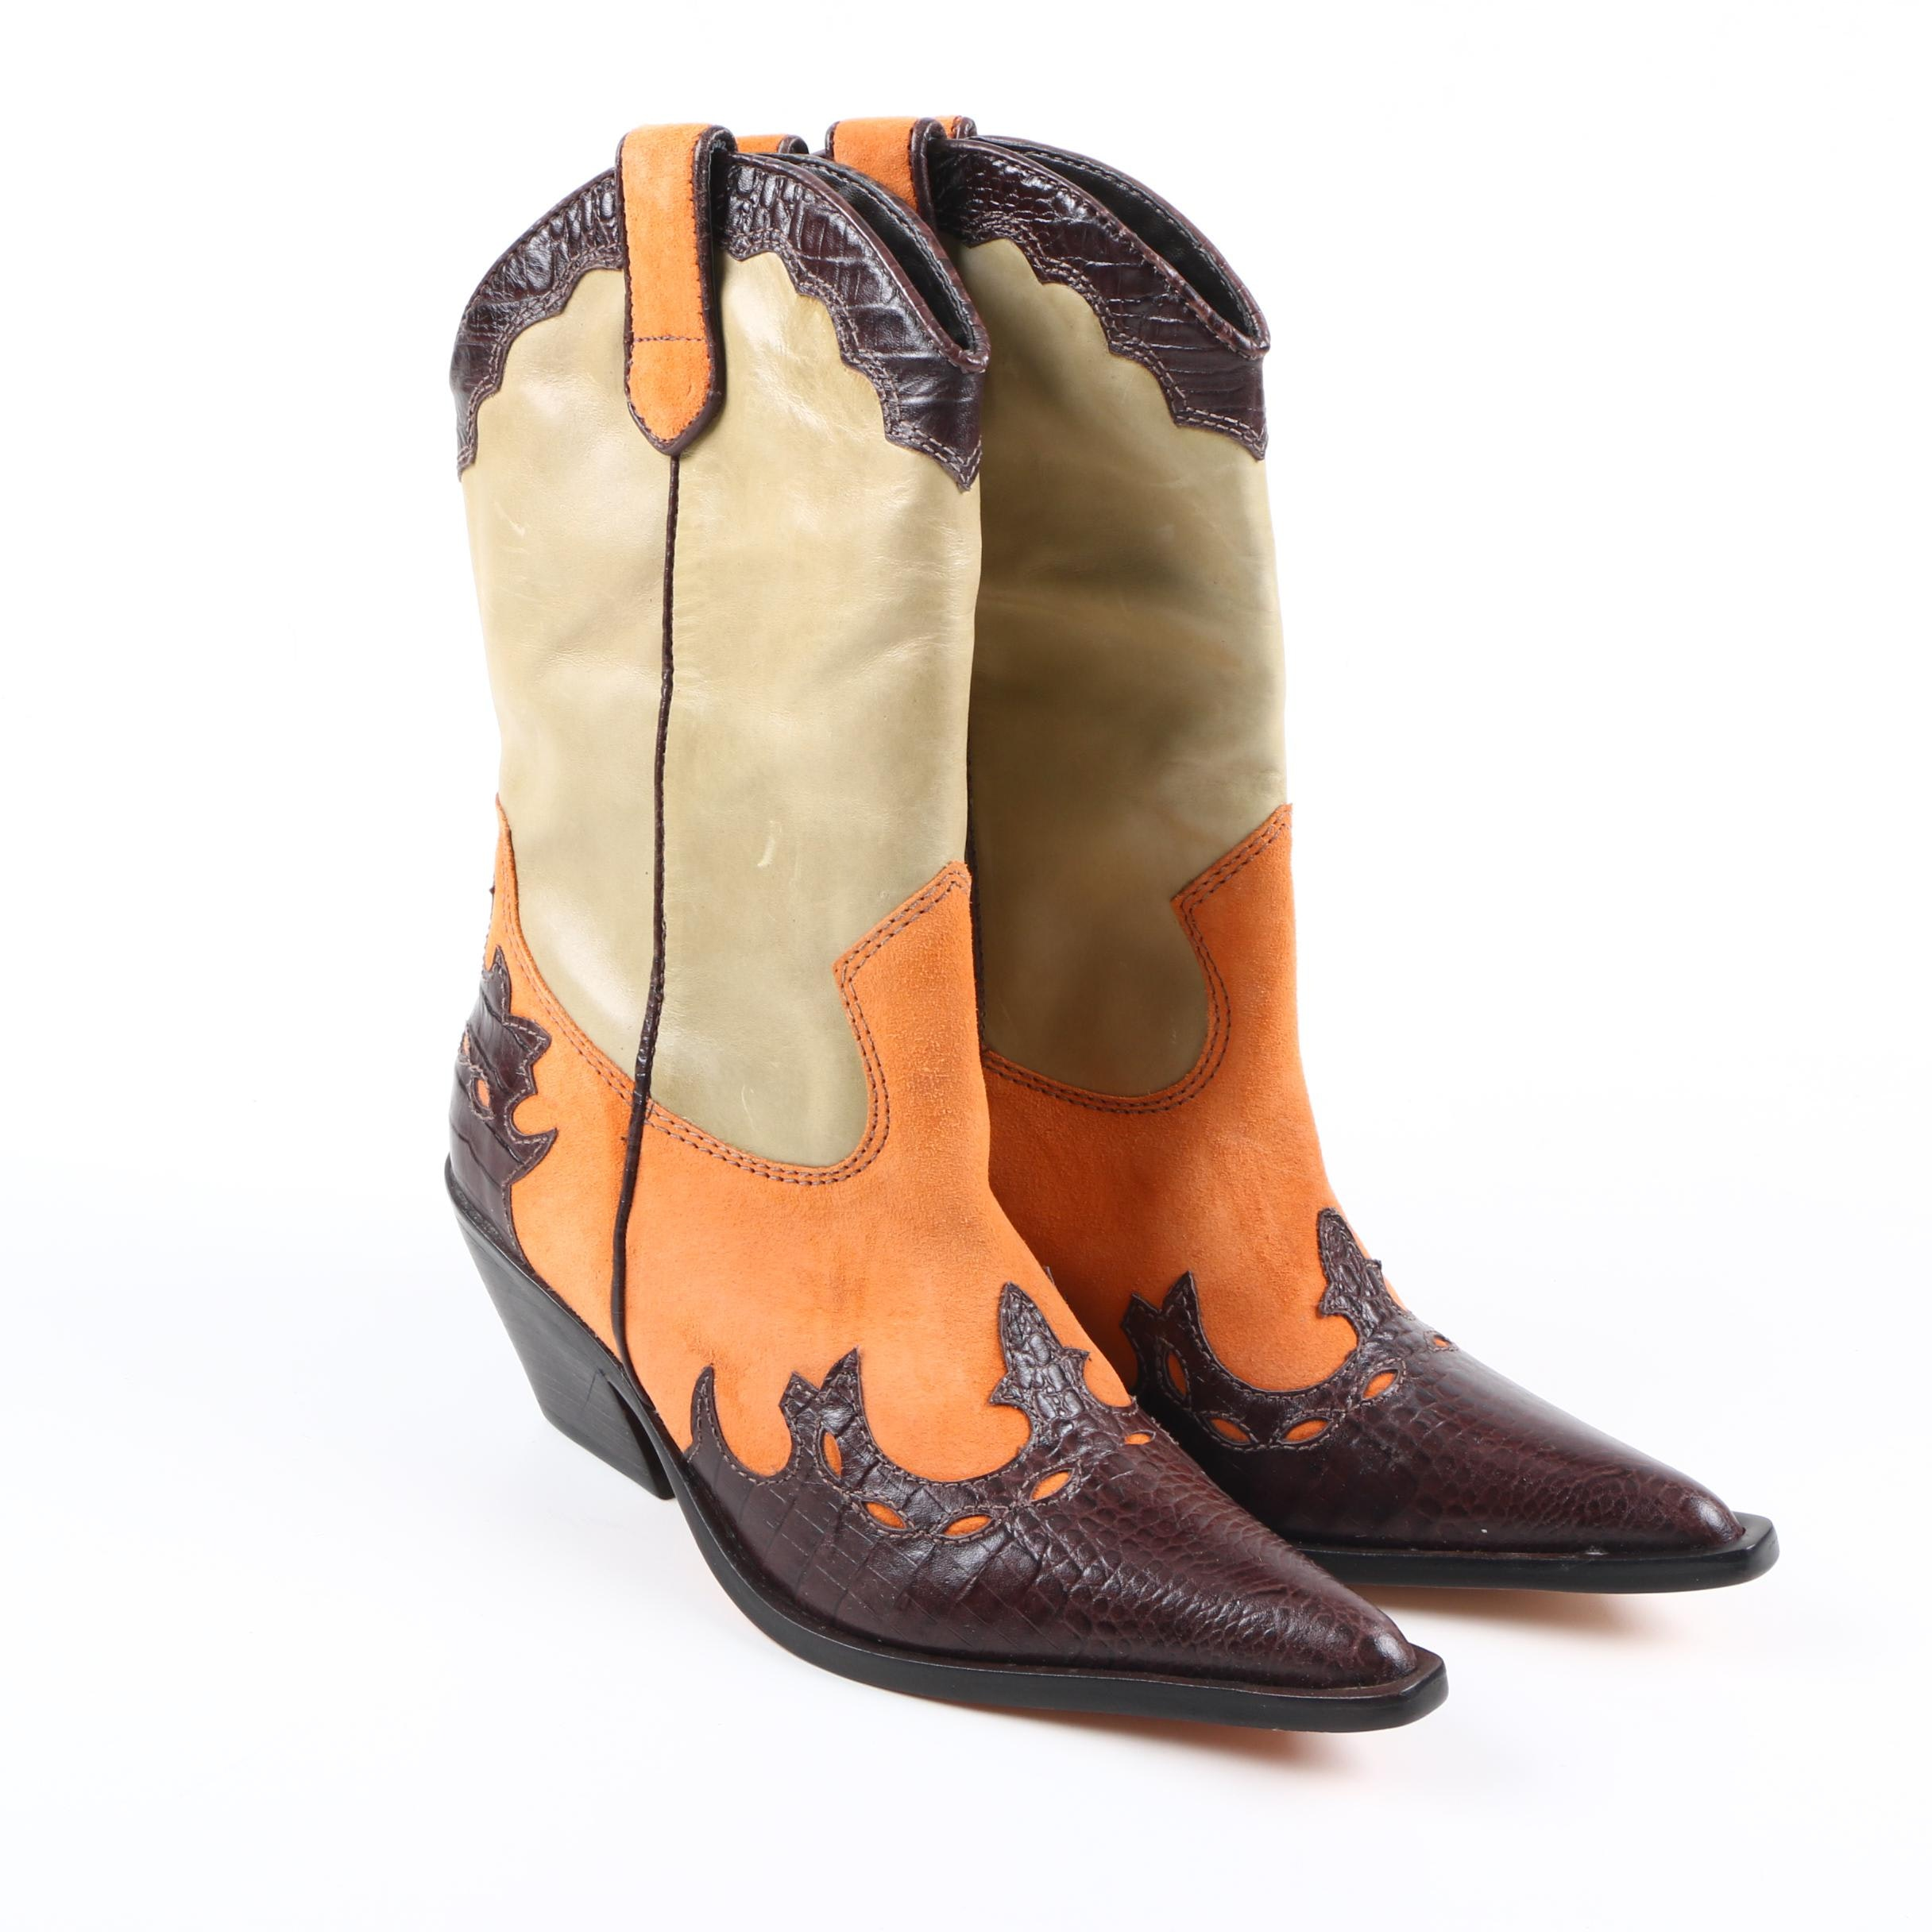 Women's Leather Cowboy Boots by Diego di Lucca